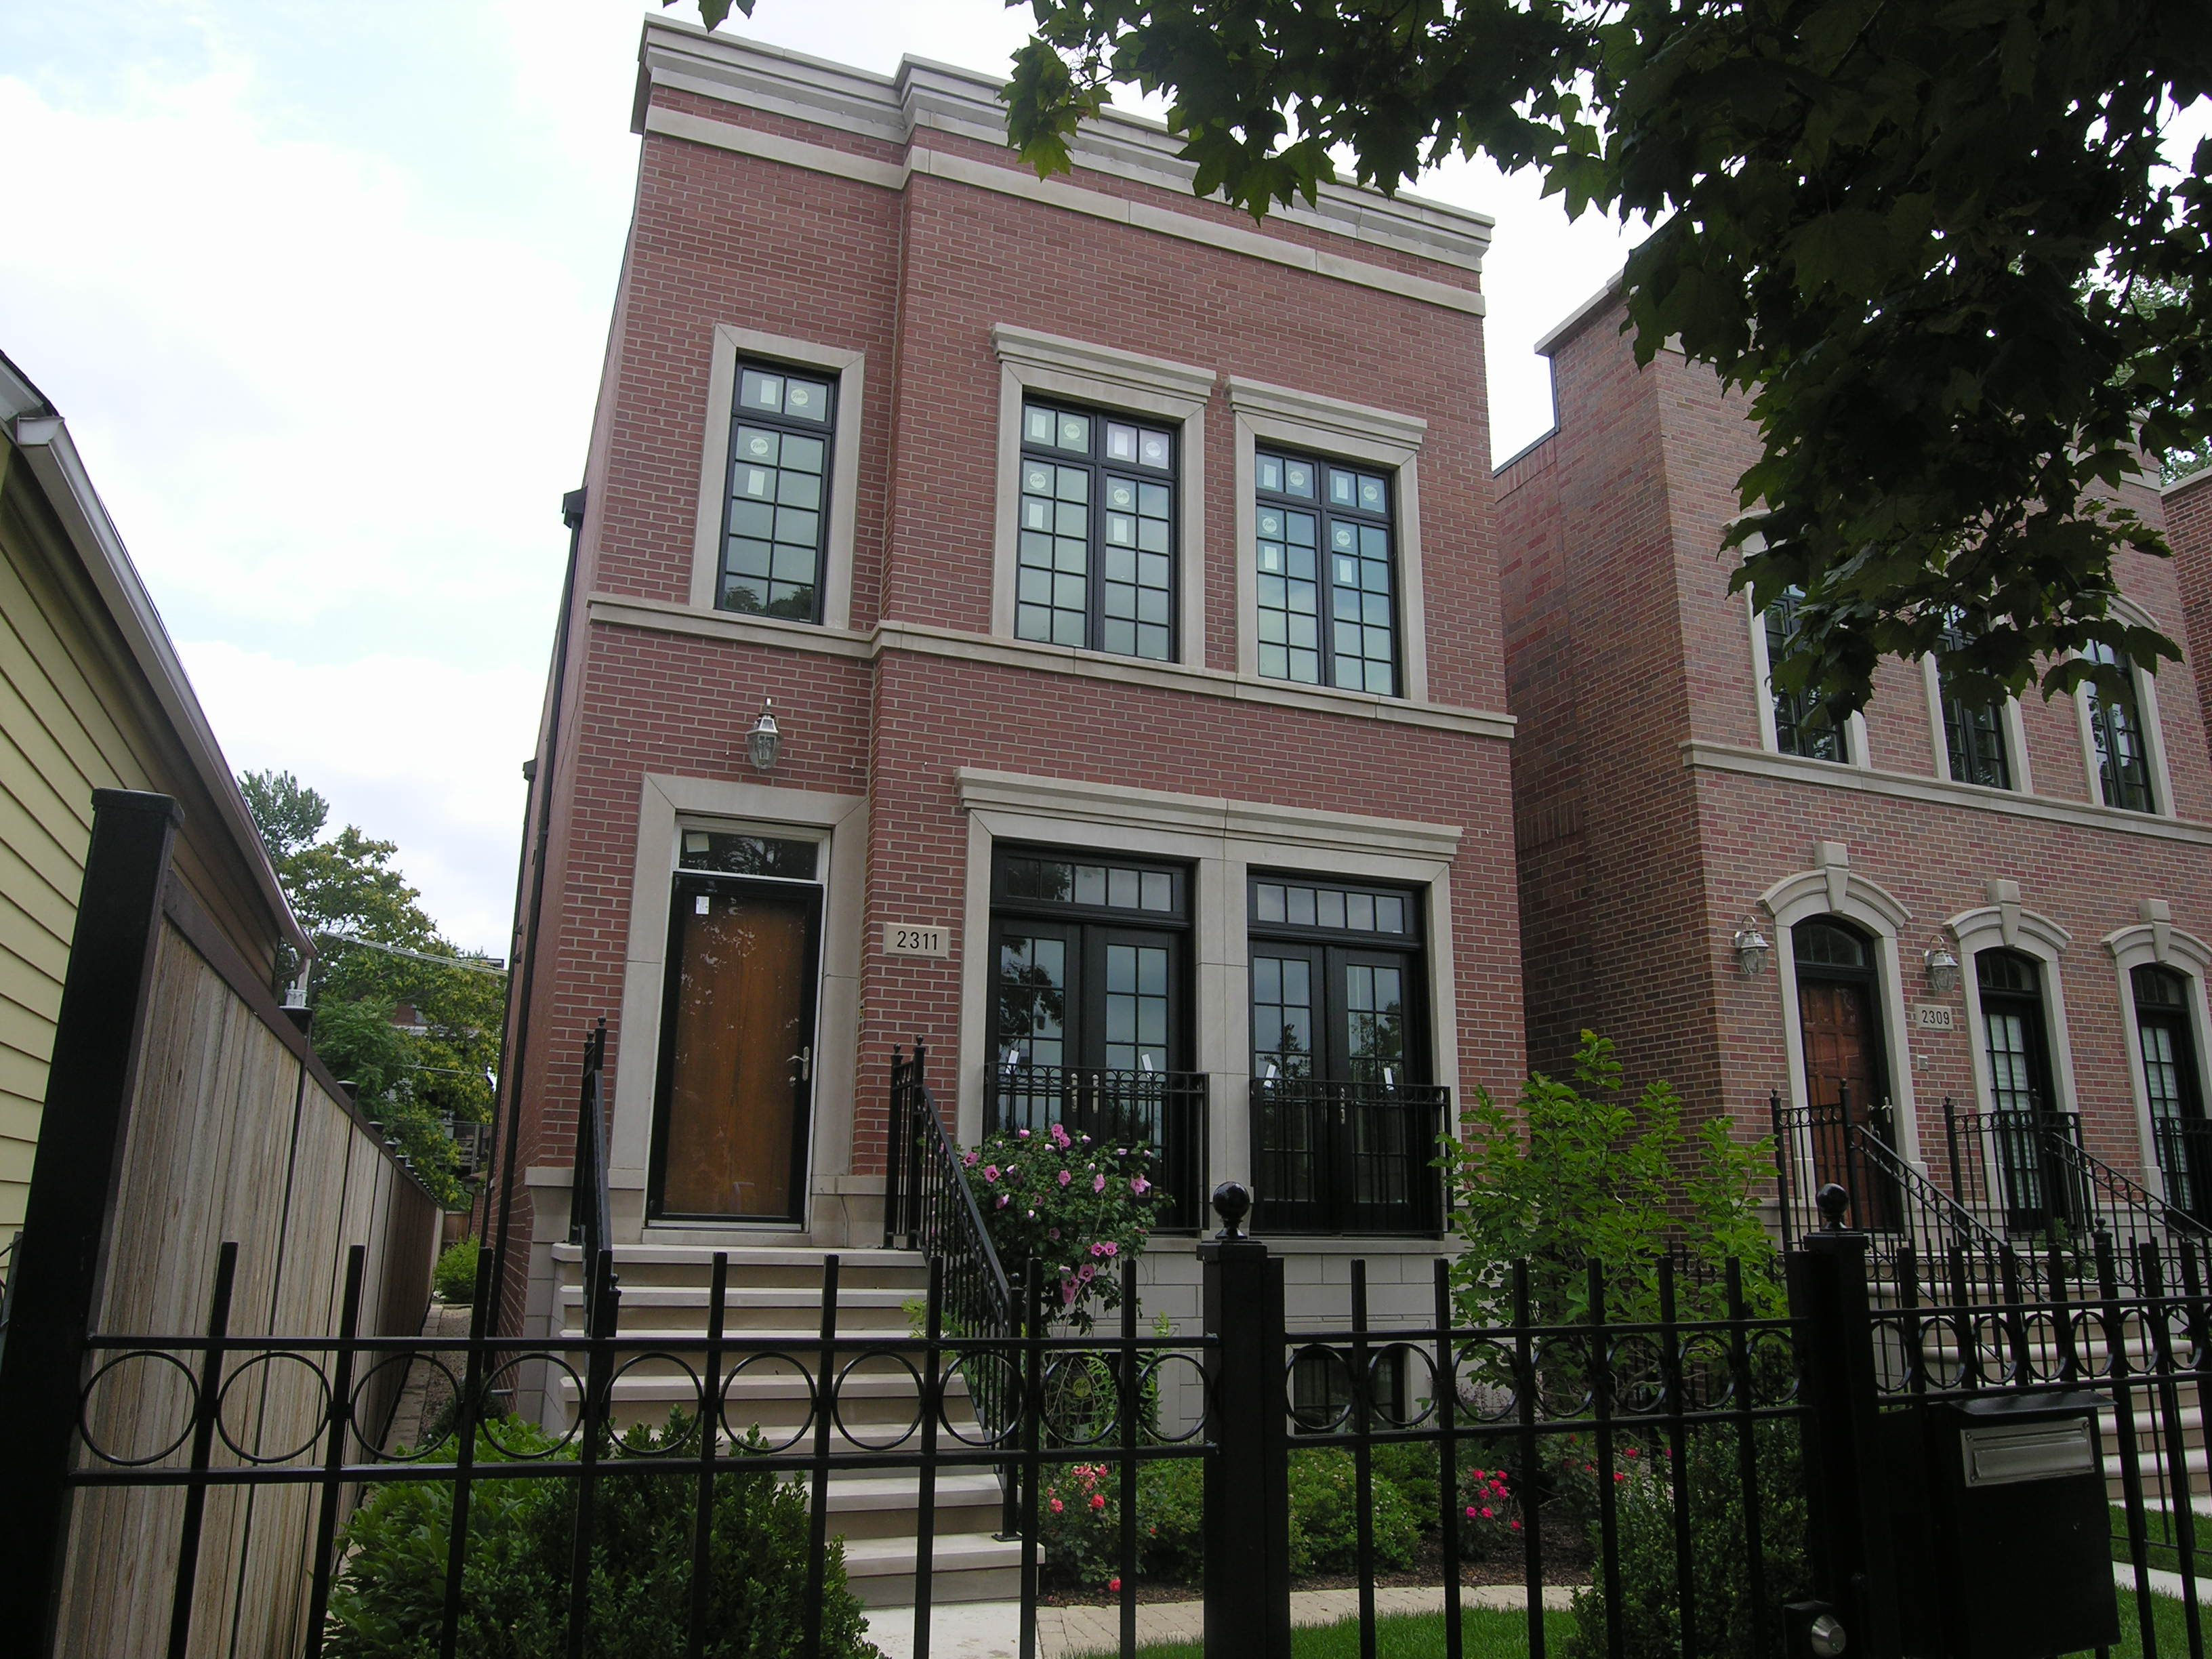 Five years later and $300K lower in Logan Square